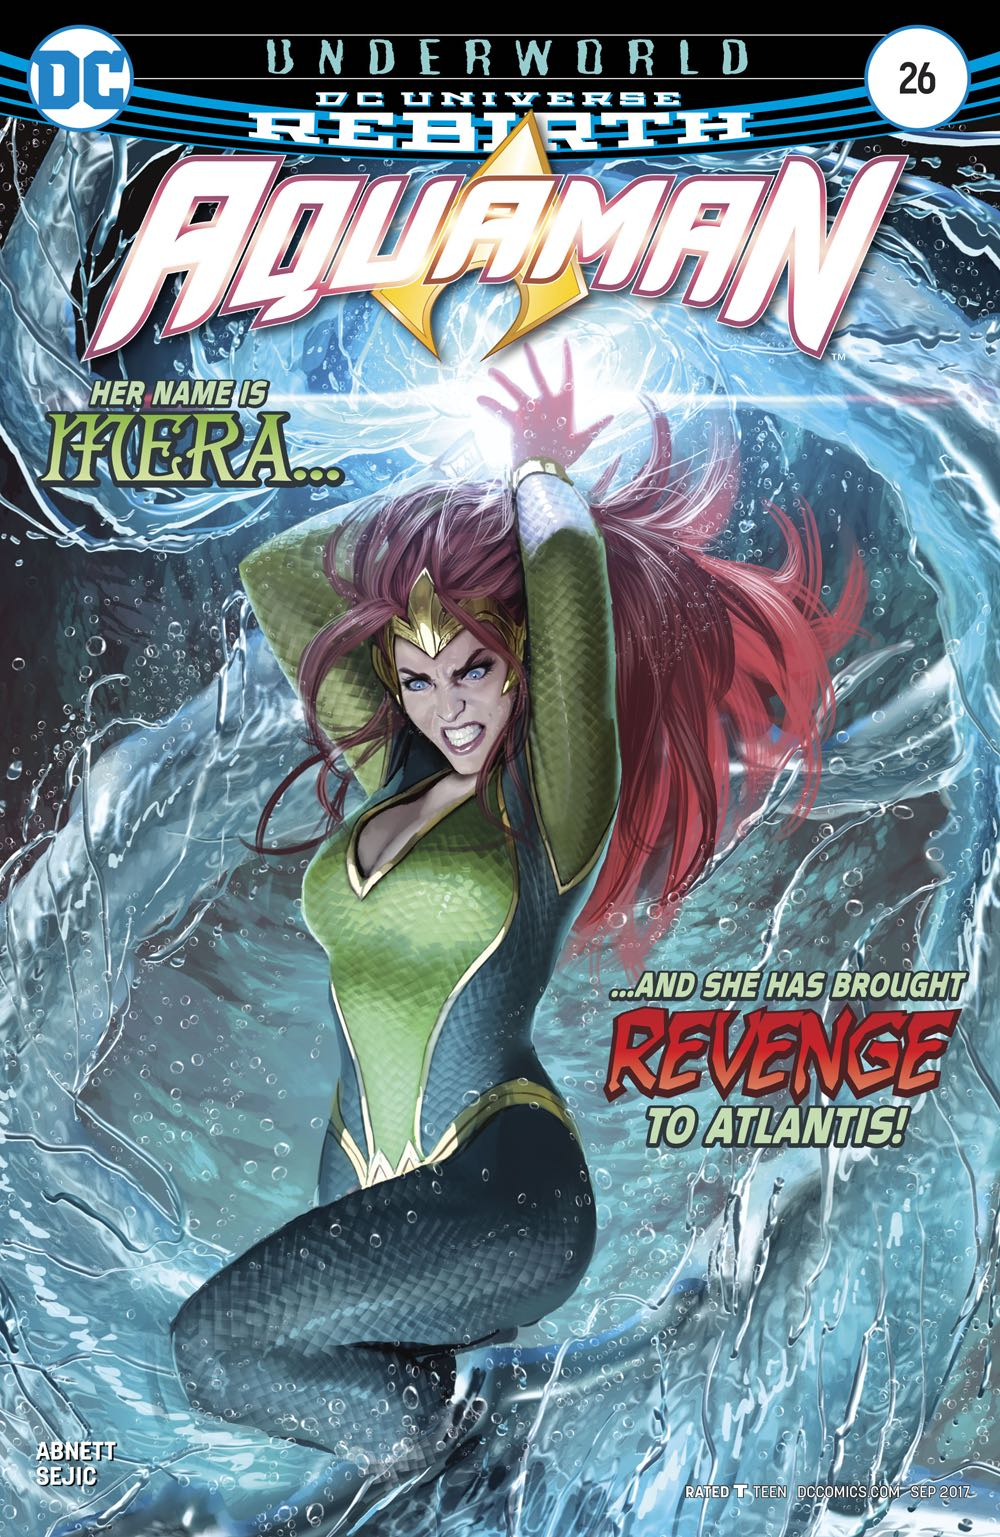 Episode 1 Cover of the Week! - (DC) Aquaman #26Cover by Stjepan SejicWritten by Dan AbnettIllustrated by Stjepan SejicDid the Content Match the Drapes? - Yes! (Outstanding)